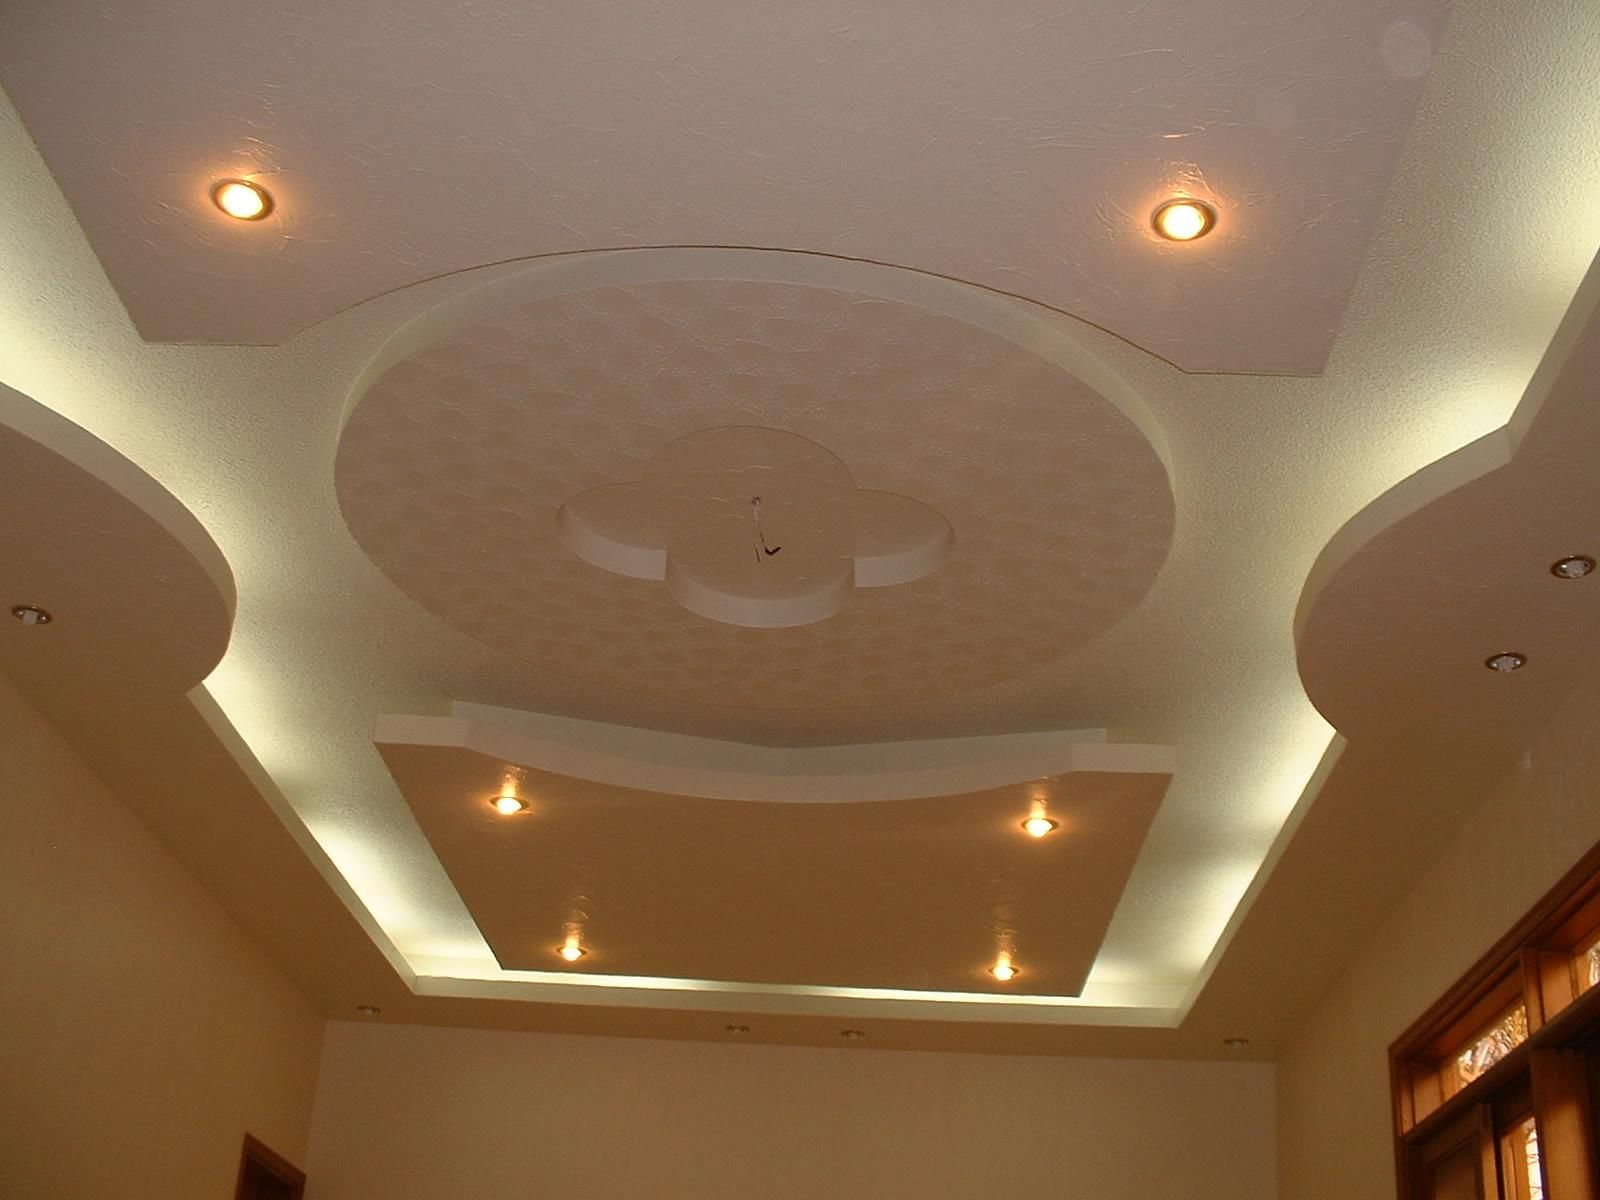 False ceiling design for living room pop square gypsum ceiling designs - Interesting Pop Ceiling Designs Aida Homes Gypsum Ceiling